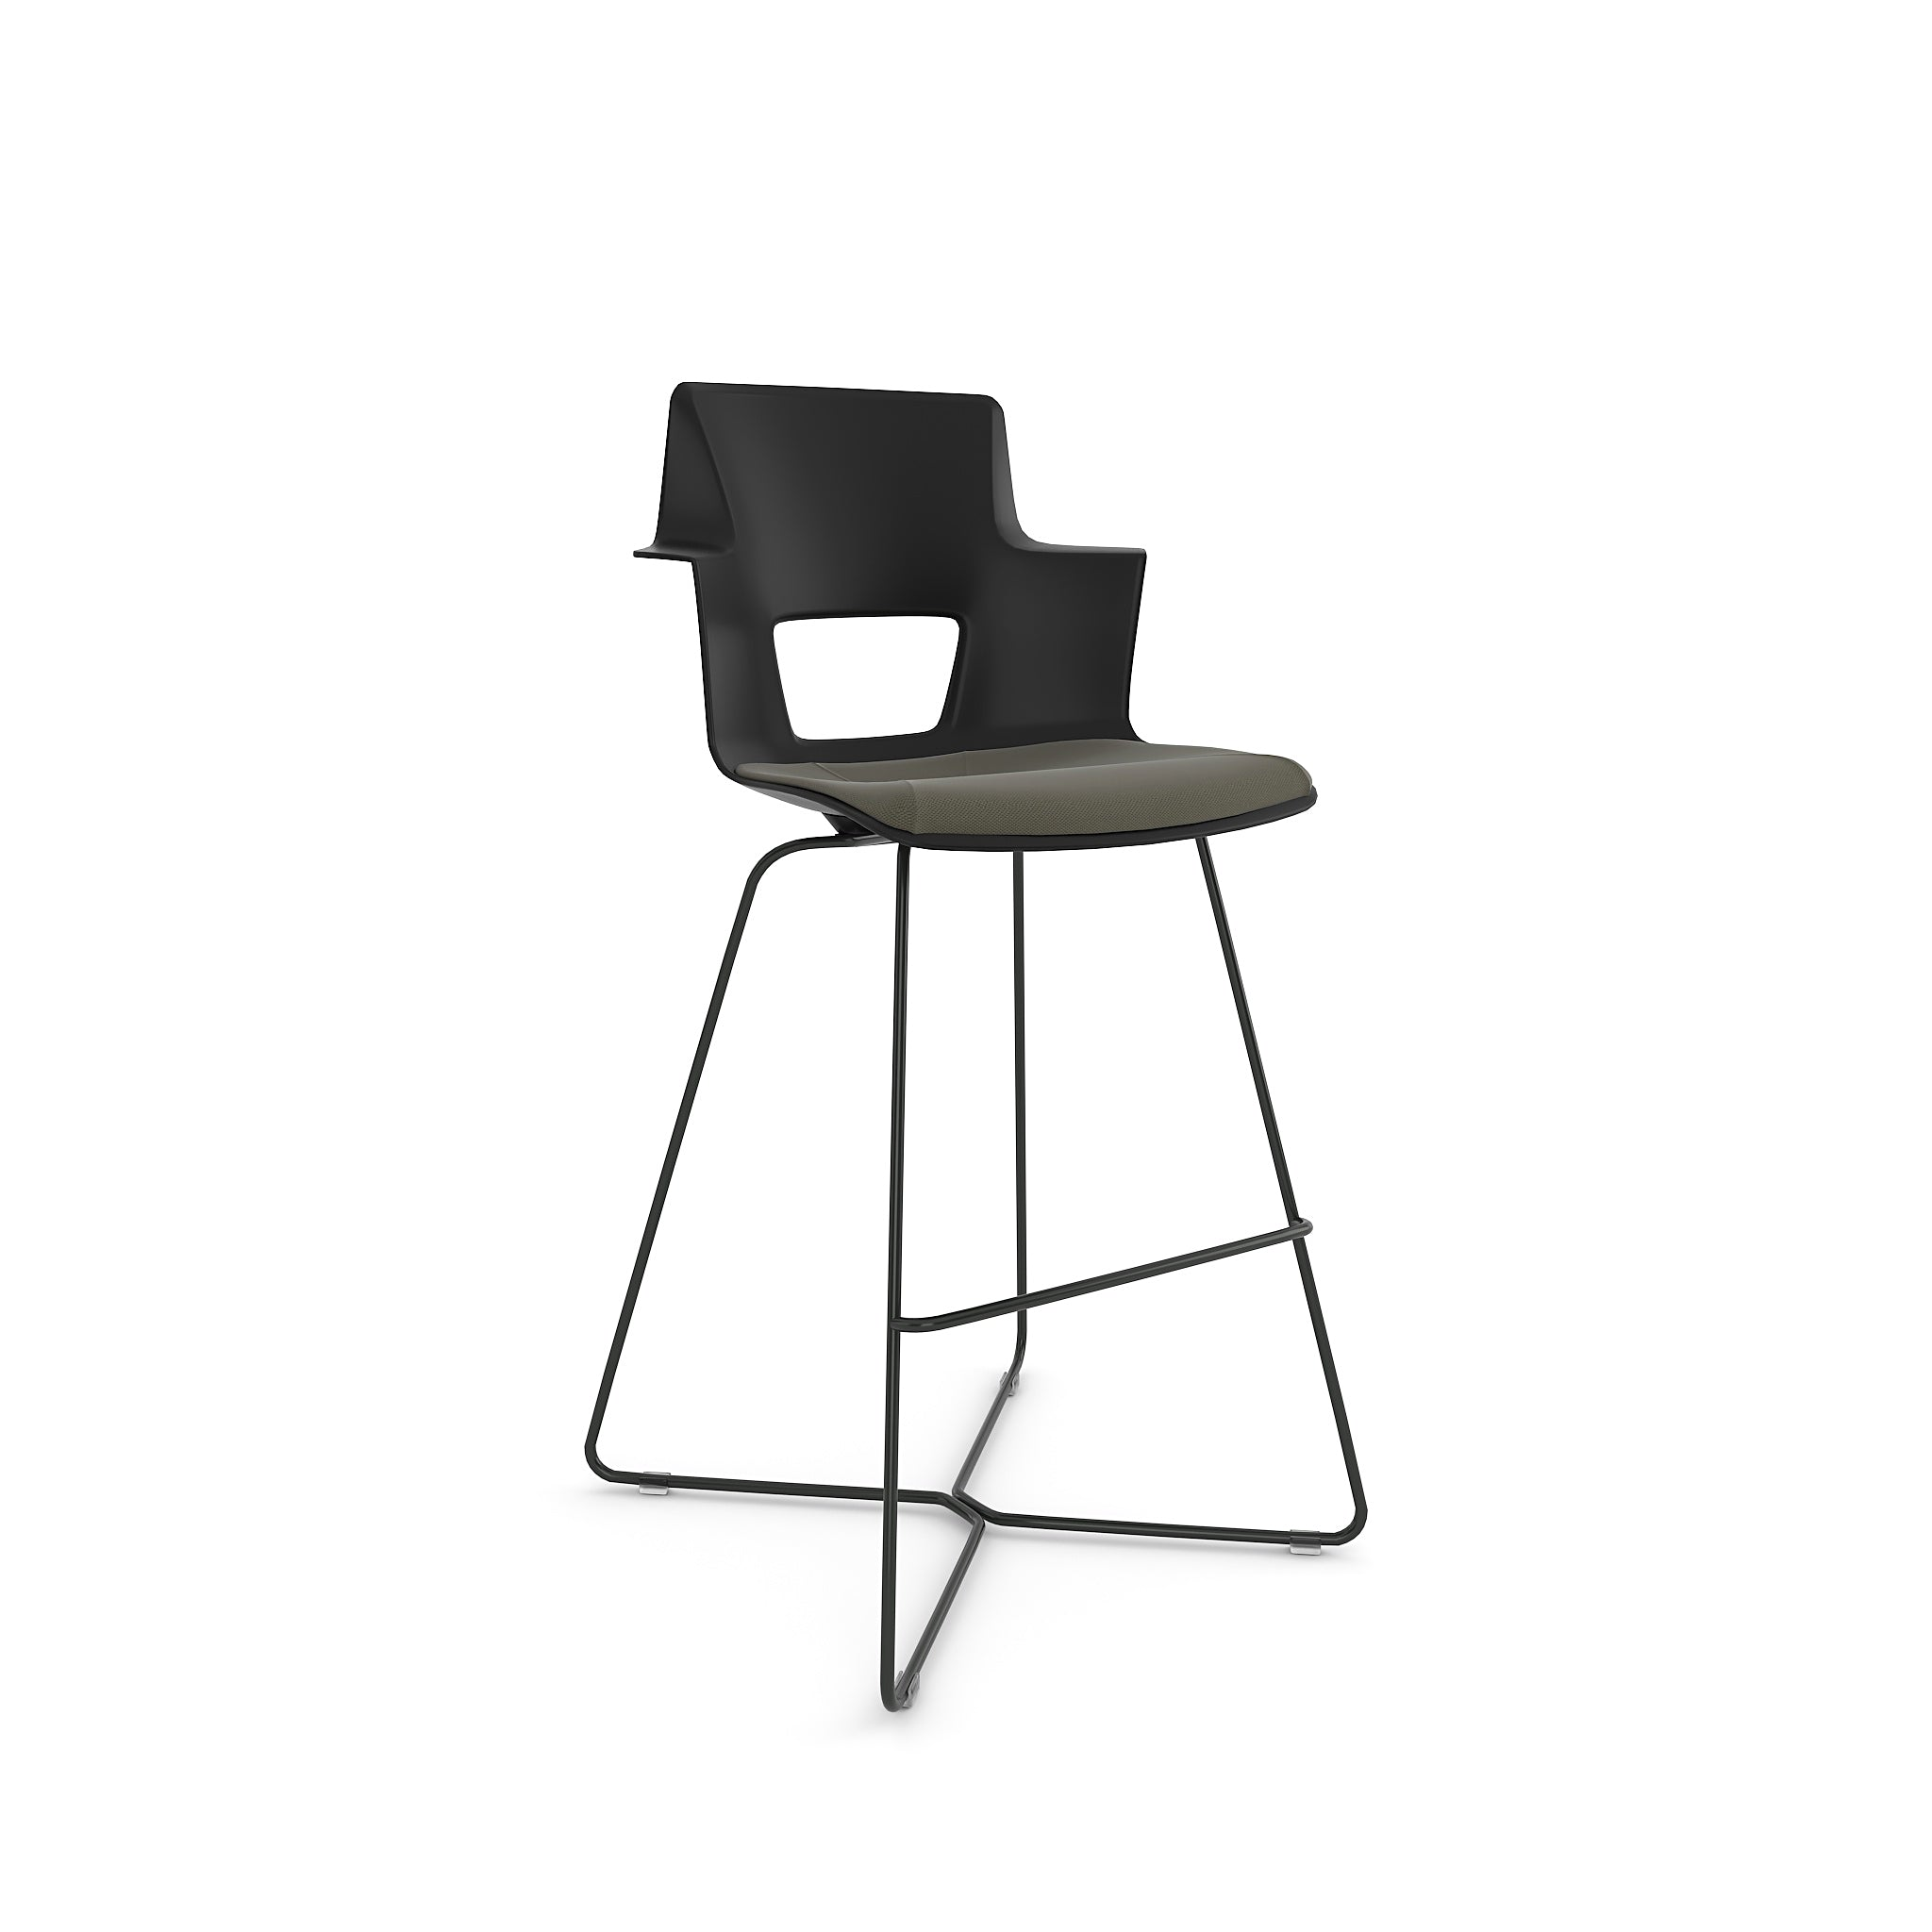 Shortcut X Base Stool - Steelcase